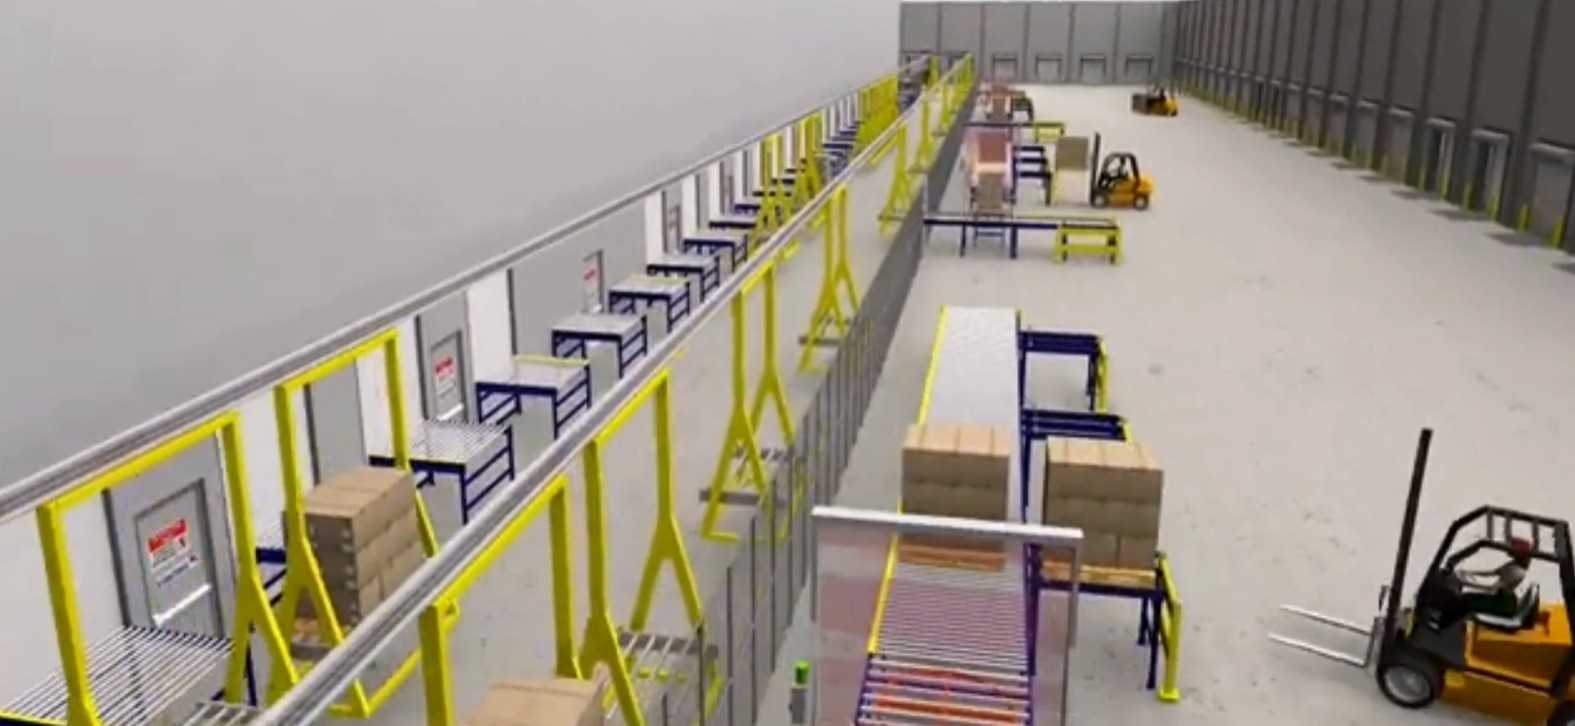 Overhead Conveyors for Inbound and Outbound Processing